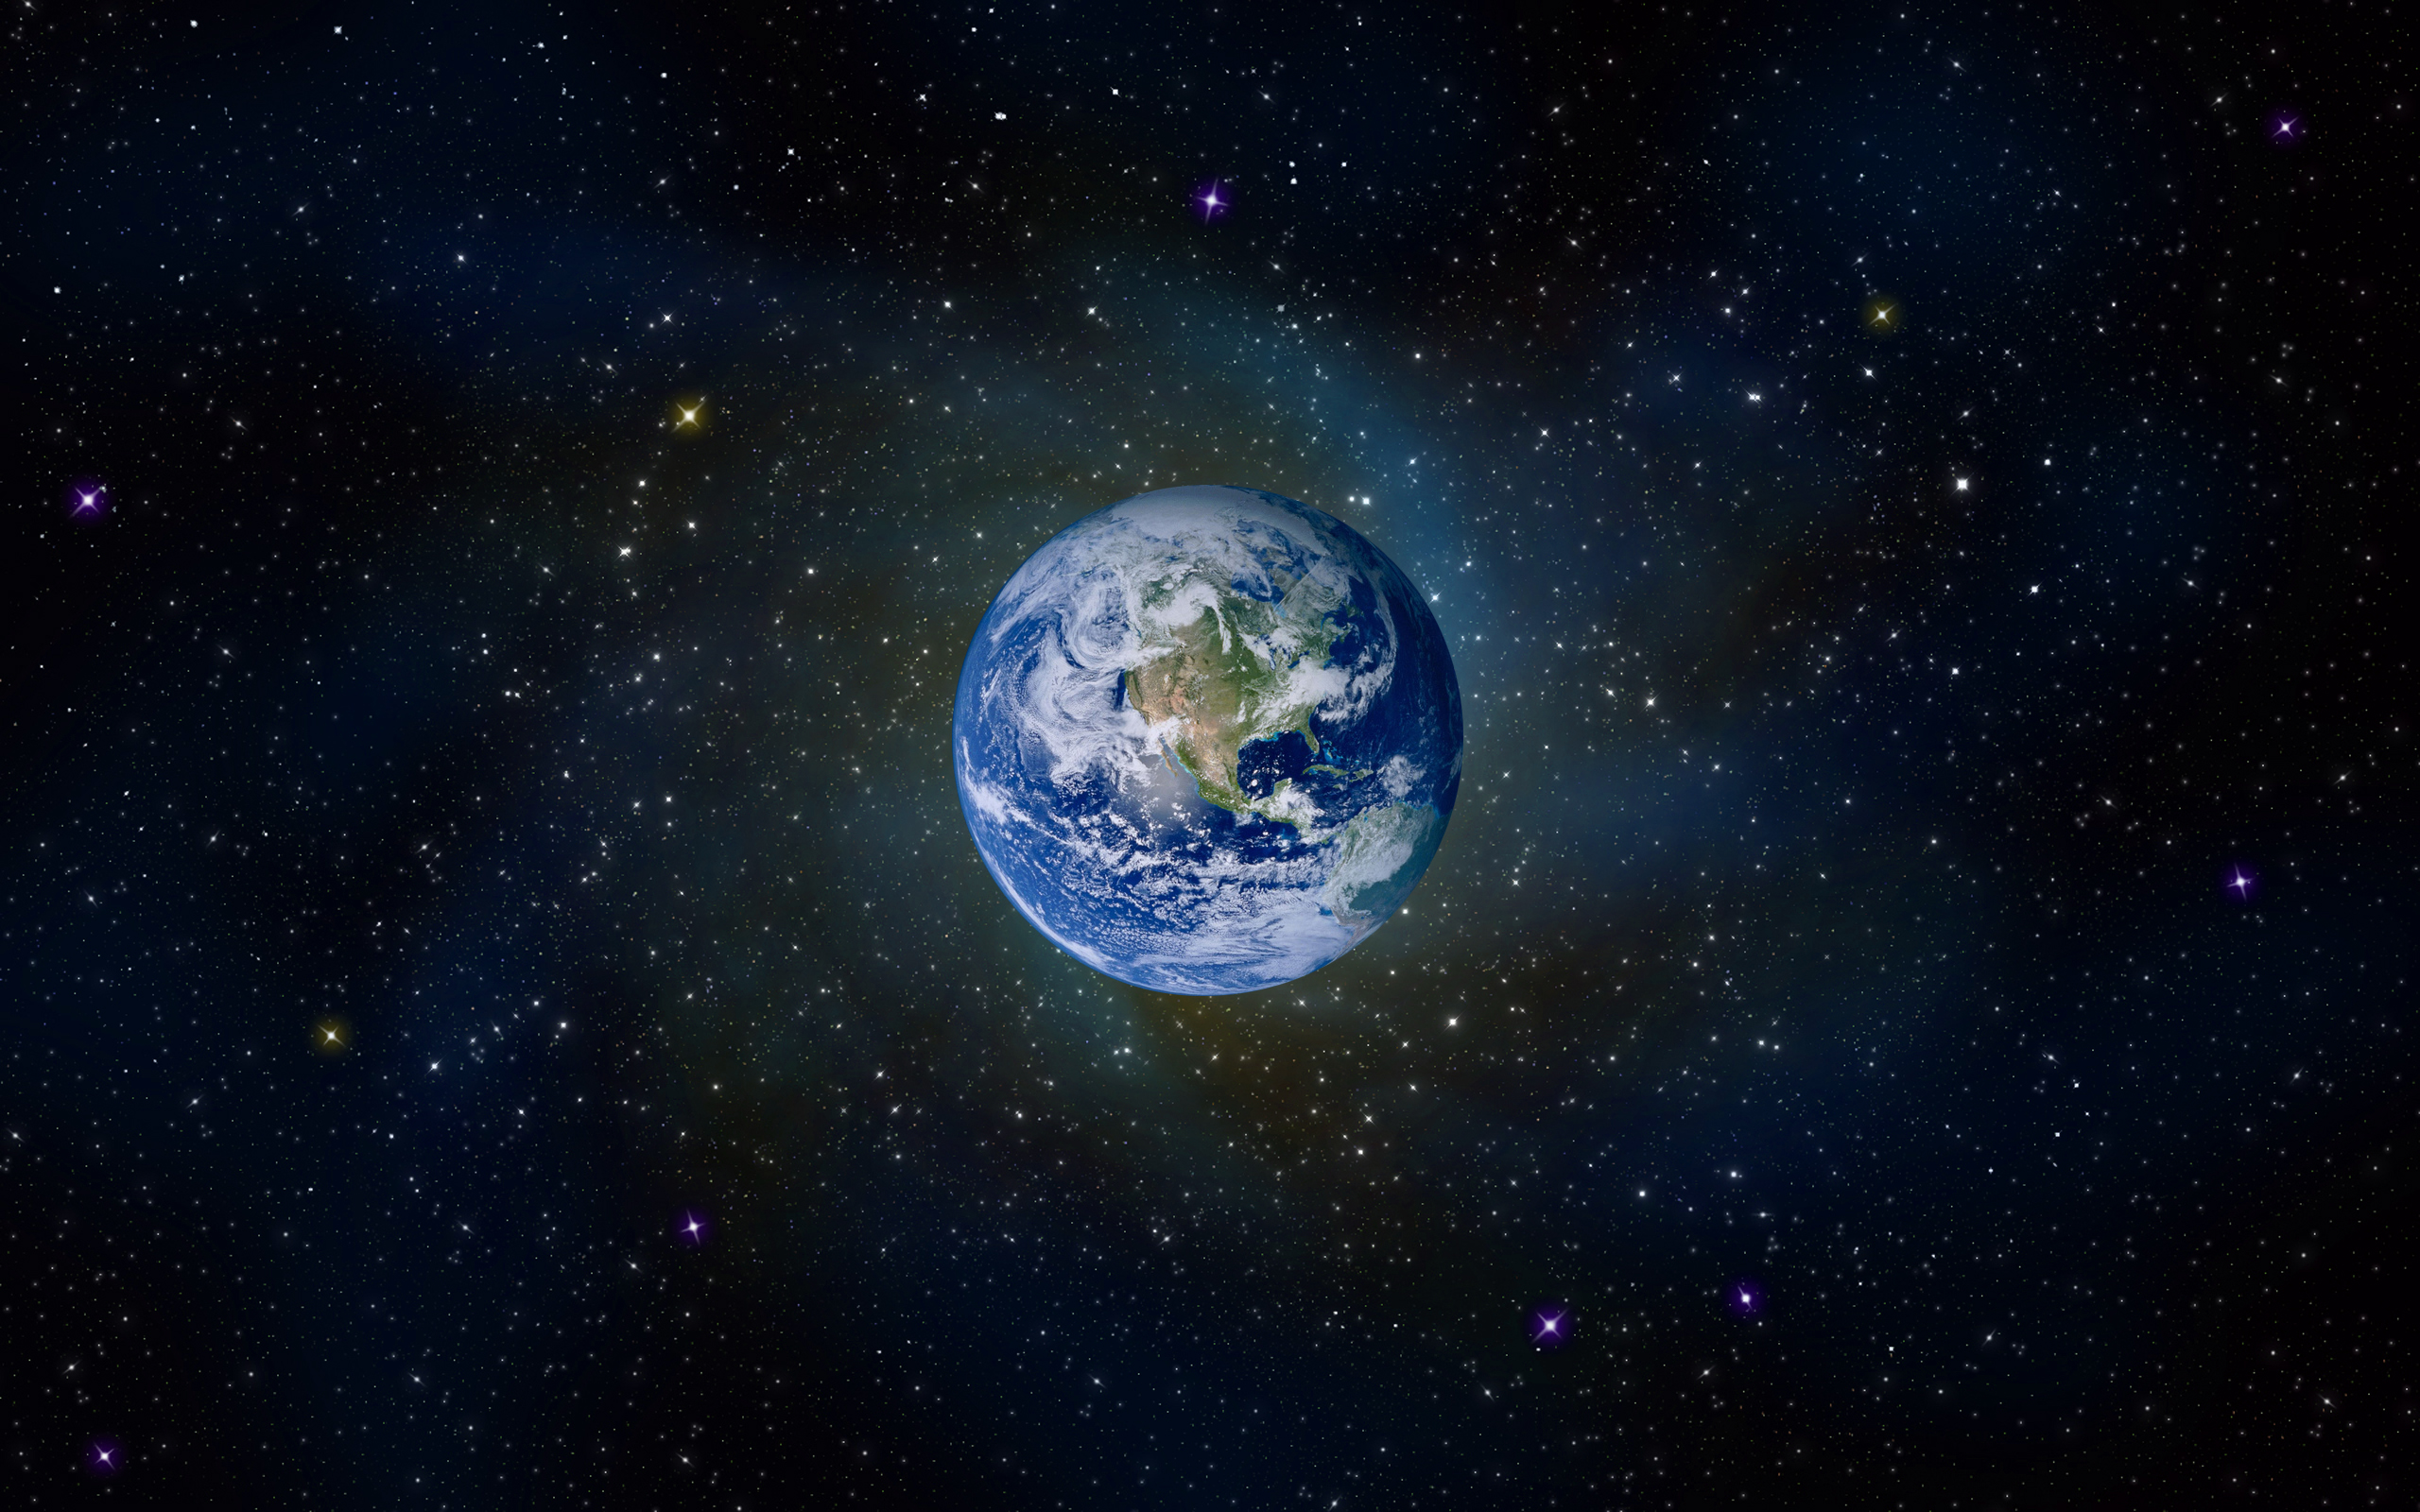 17+ images about Earth From Space on Pinterest | Astronauts